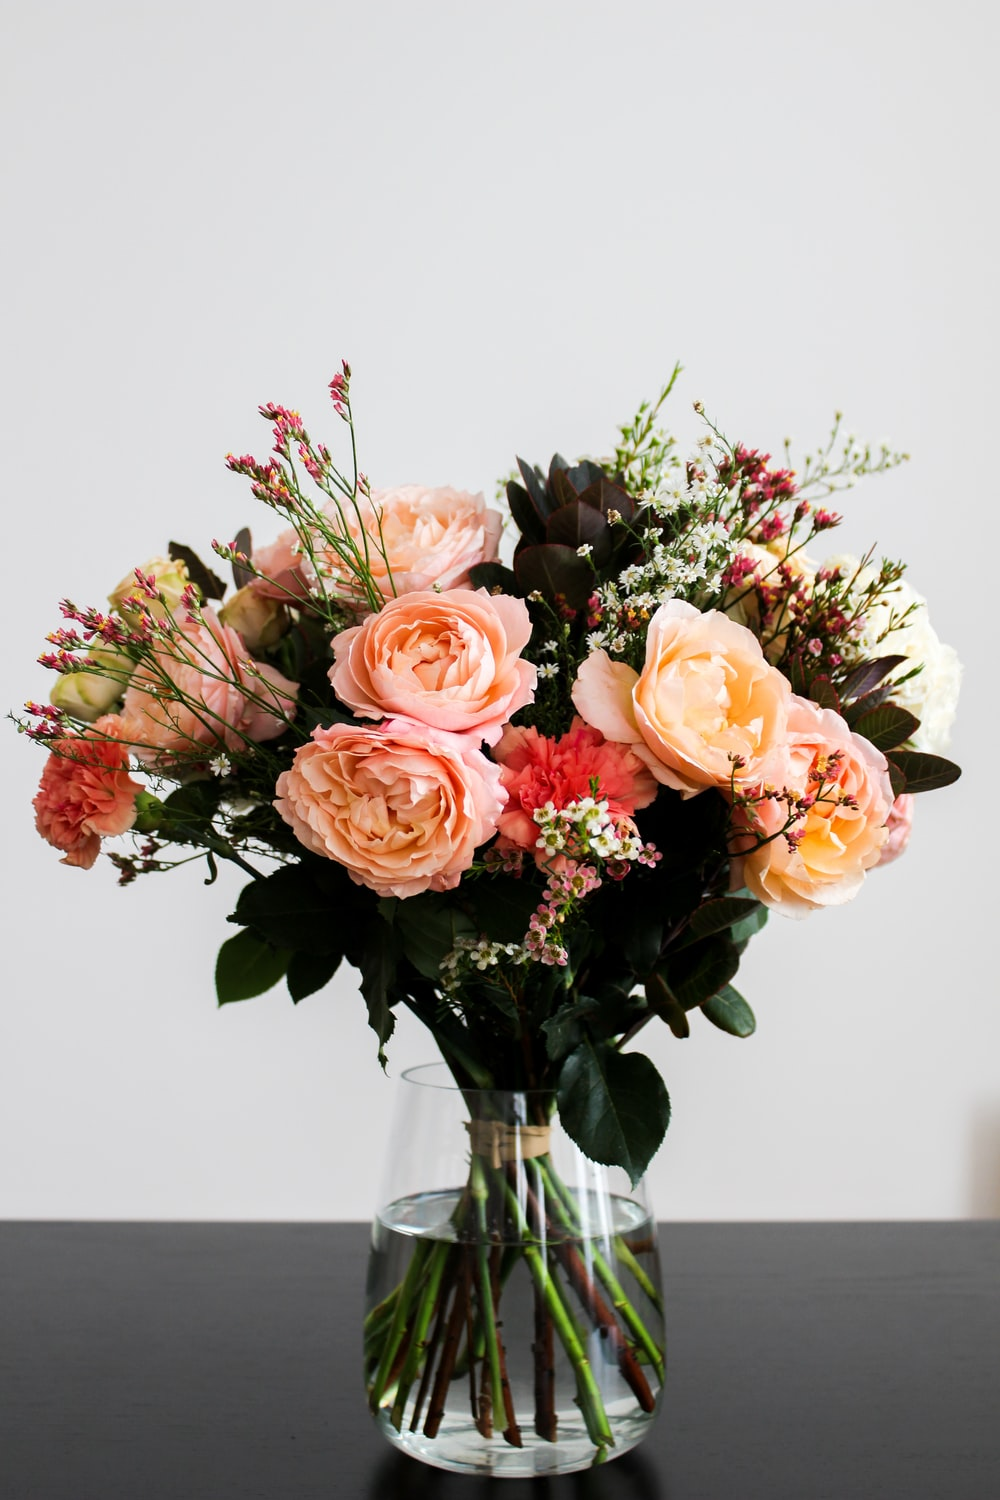 pink, beige, and red flower bouquet in clear glass vase